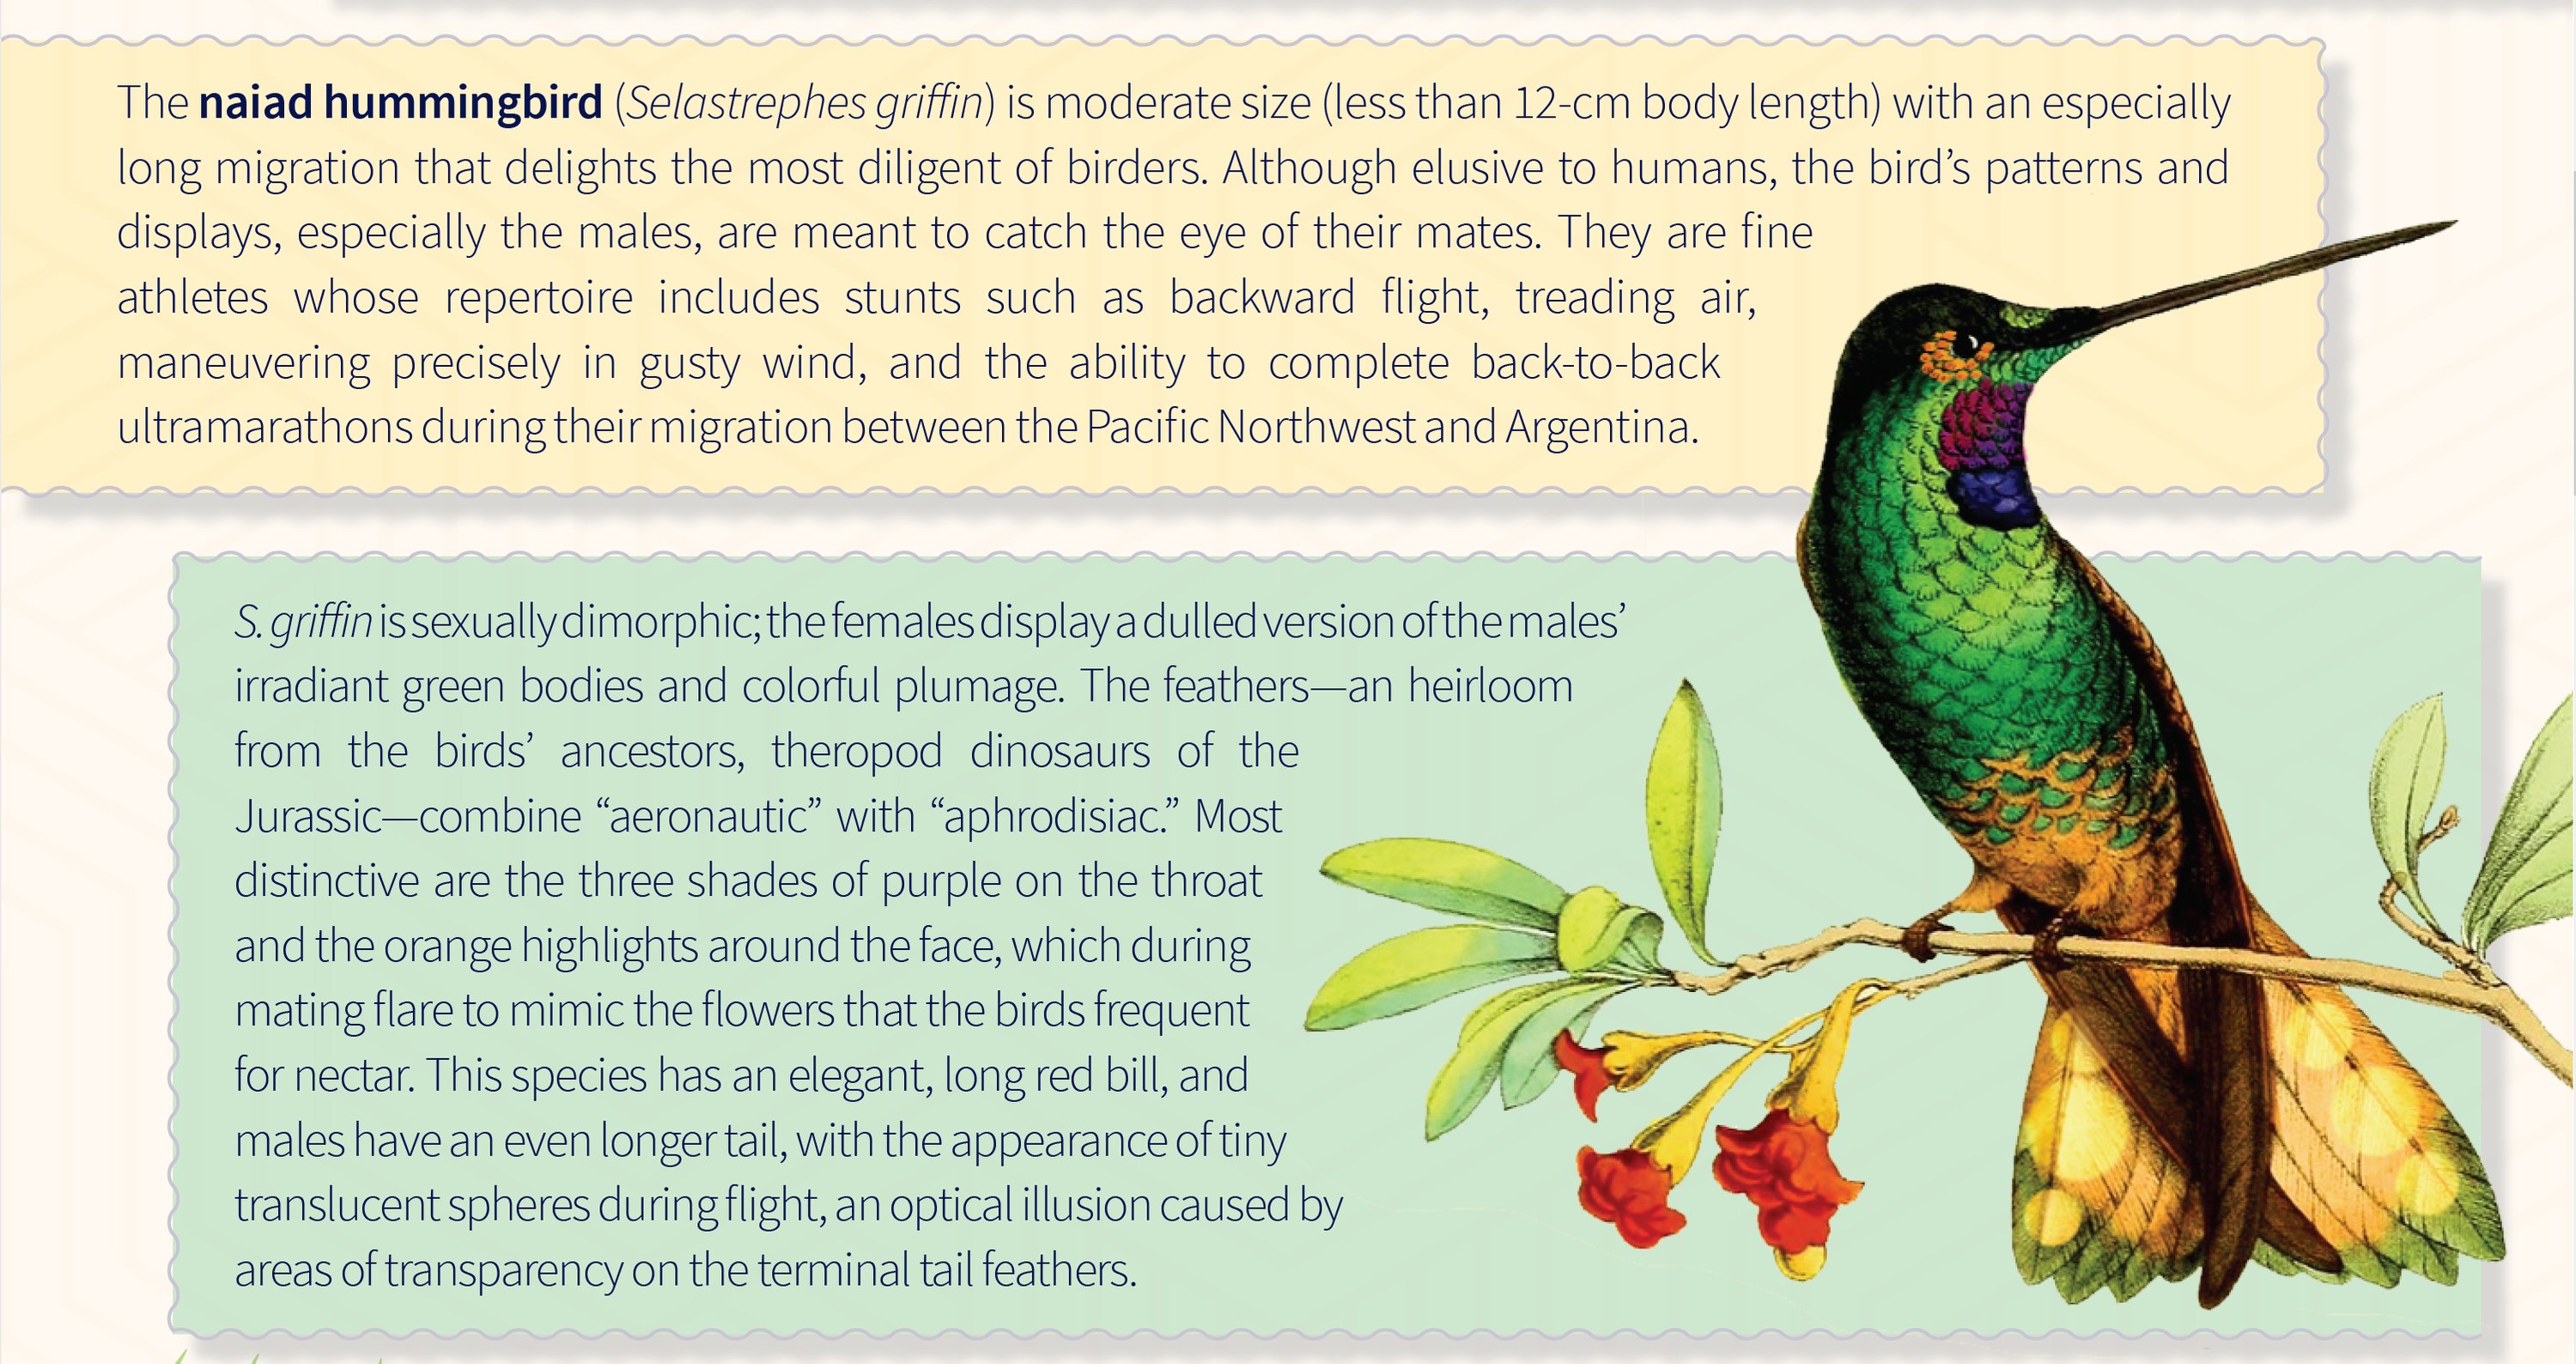 A naiad hummingbird and biological information on this species.